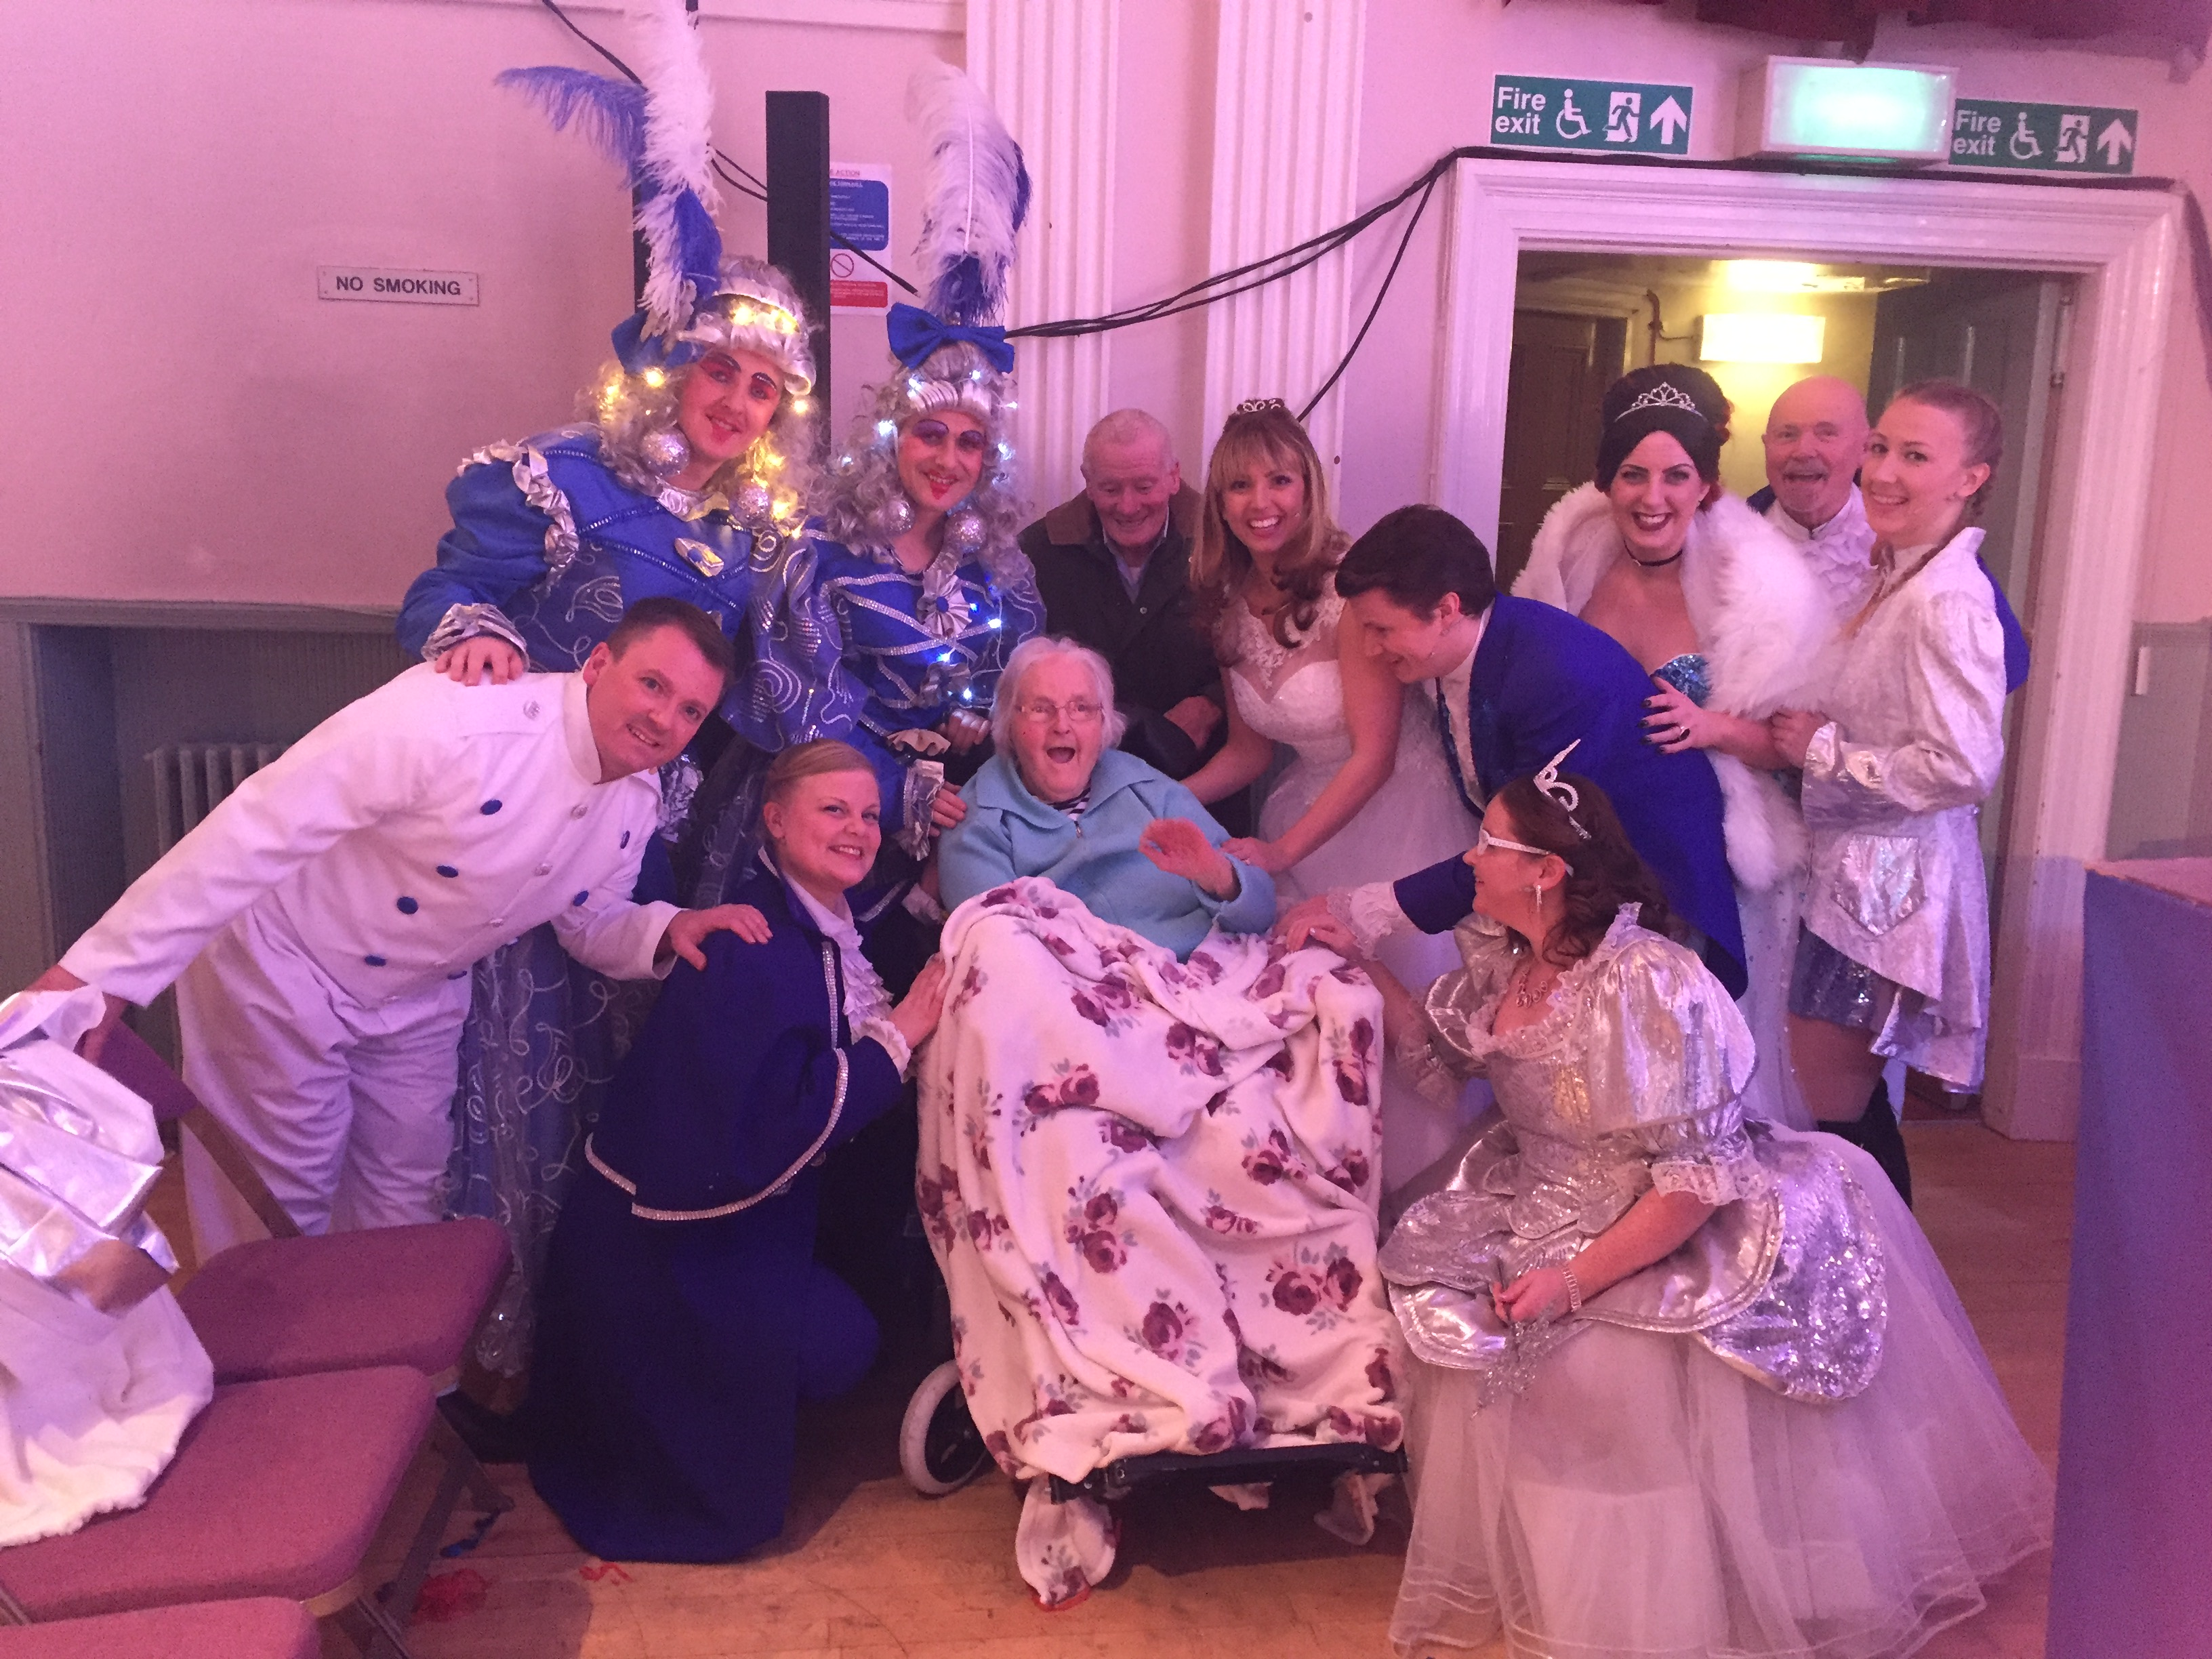 Kath and Duncan surrounded by the cast of Cinderella